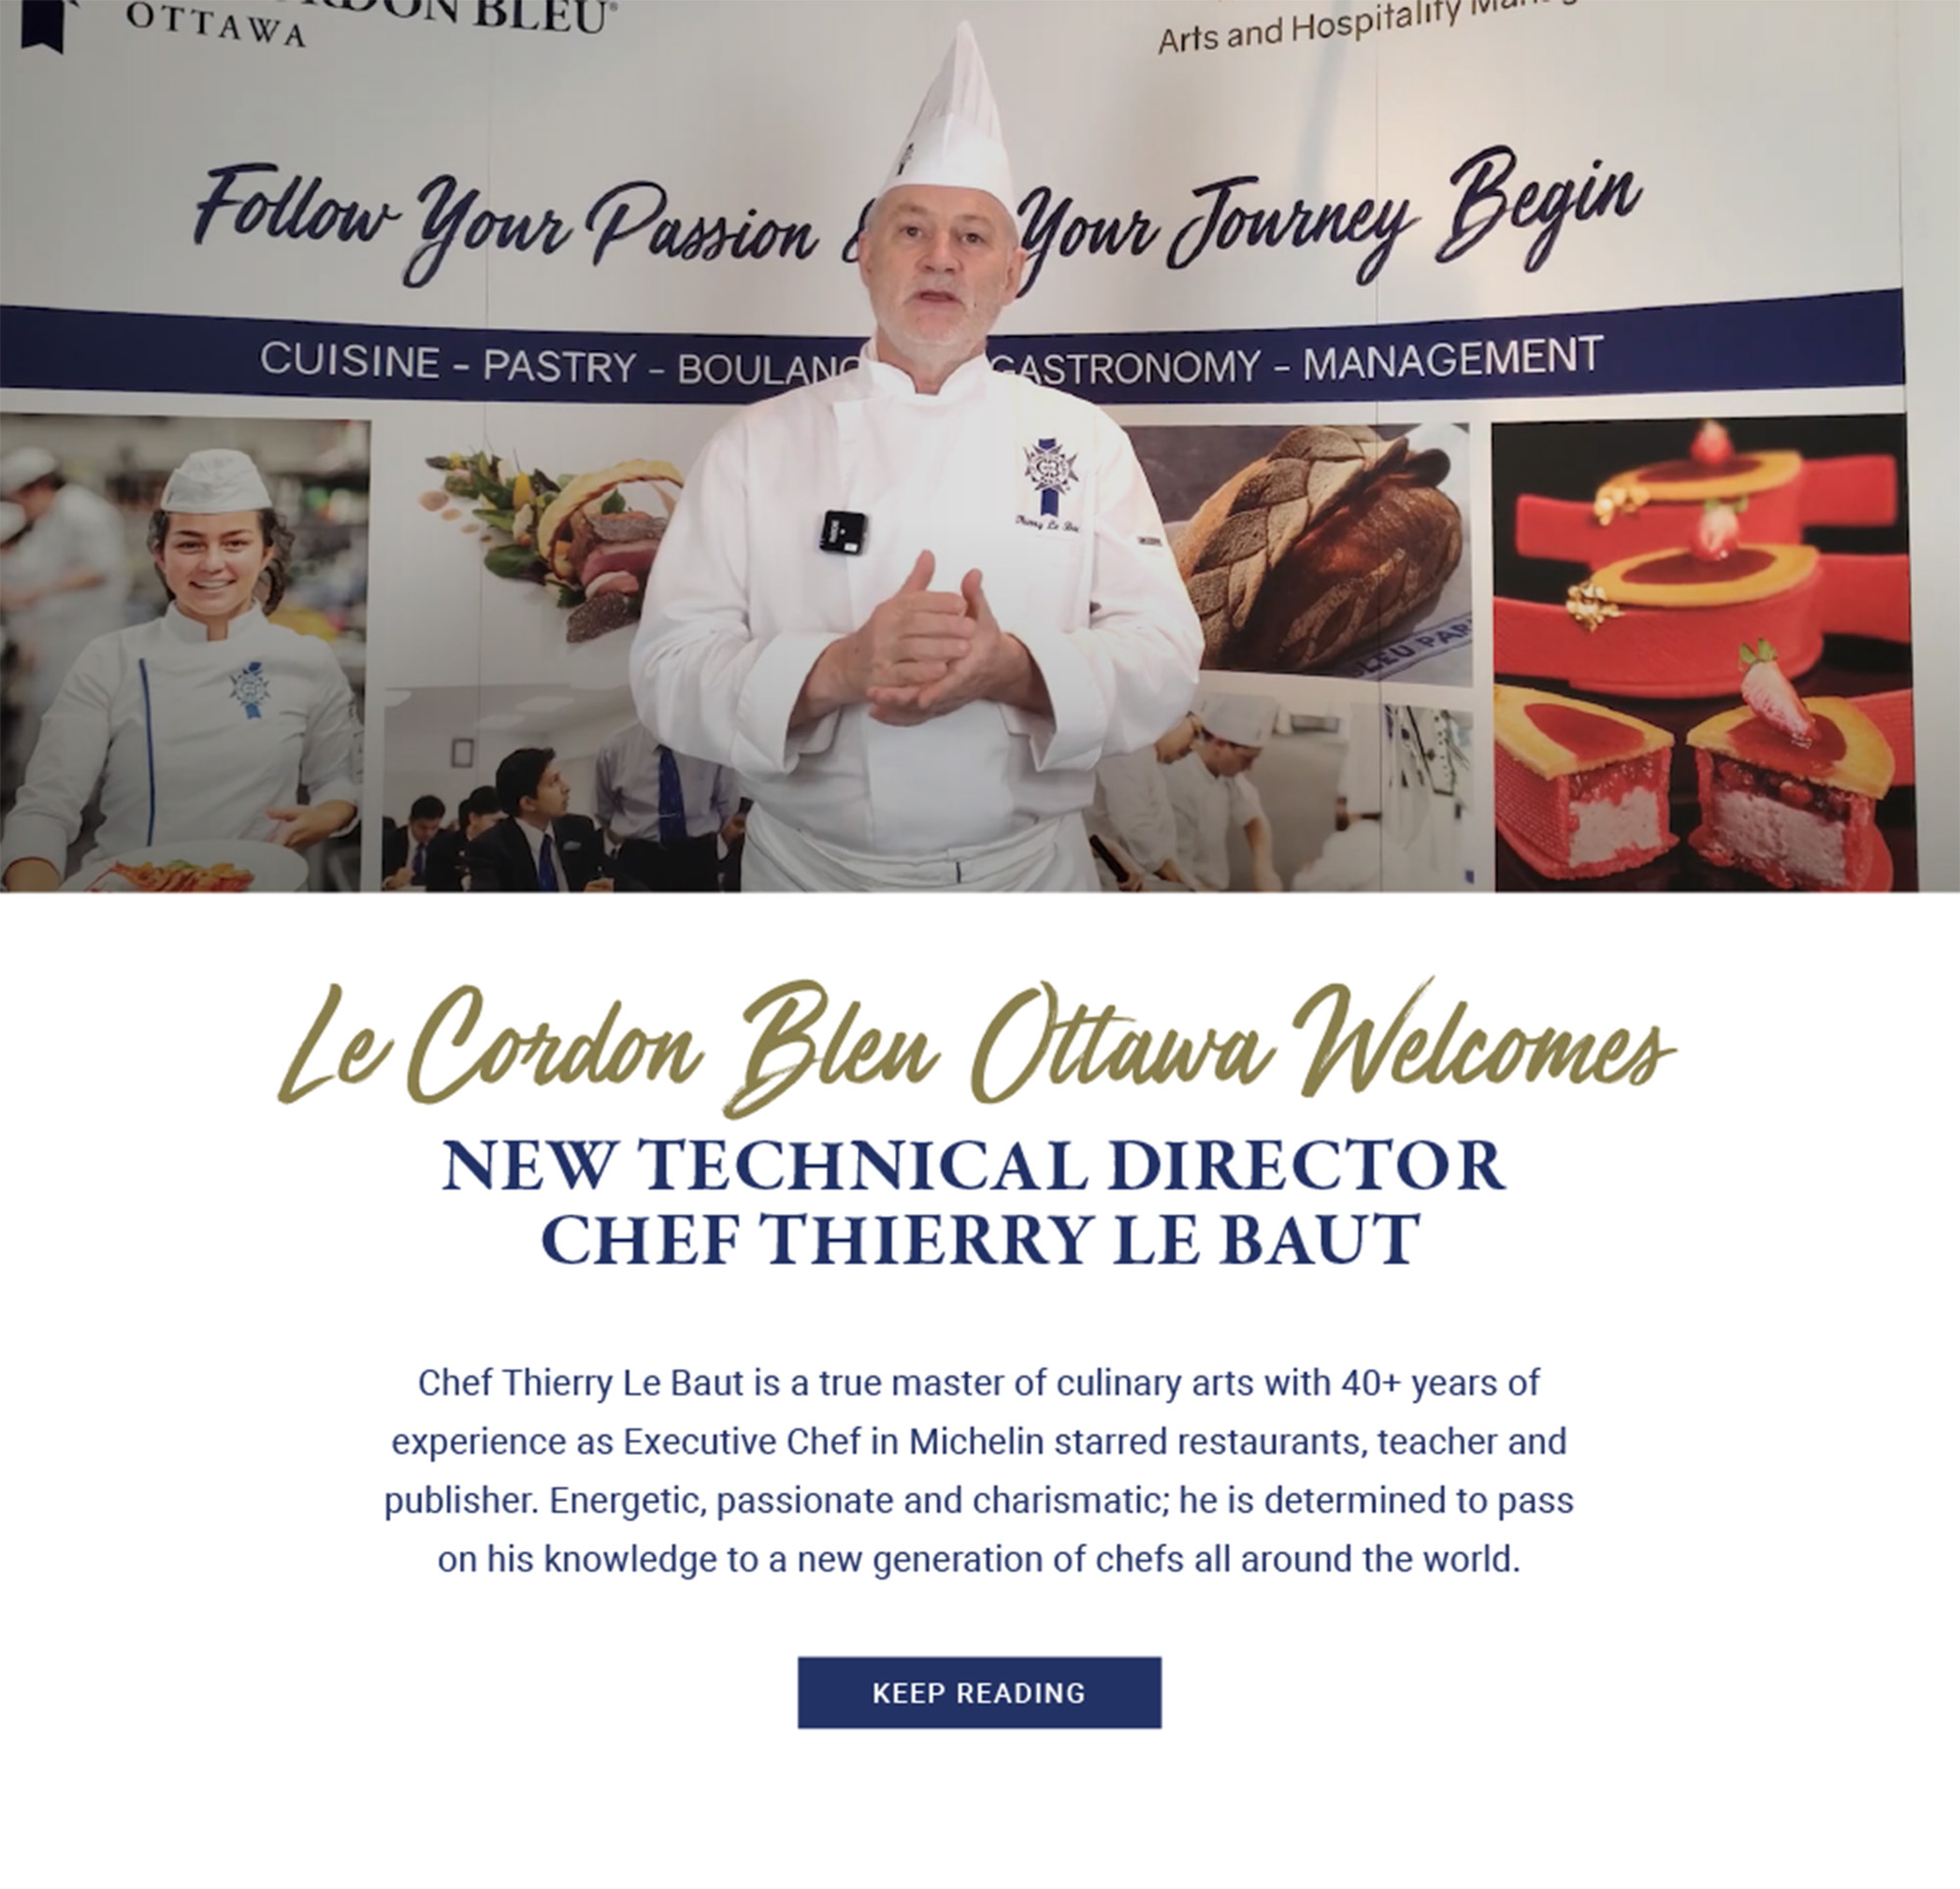 NEW TECHNICAL DIRECTOR CHEF THIERRY LE BAUT